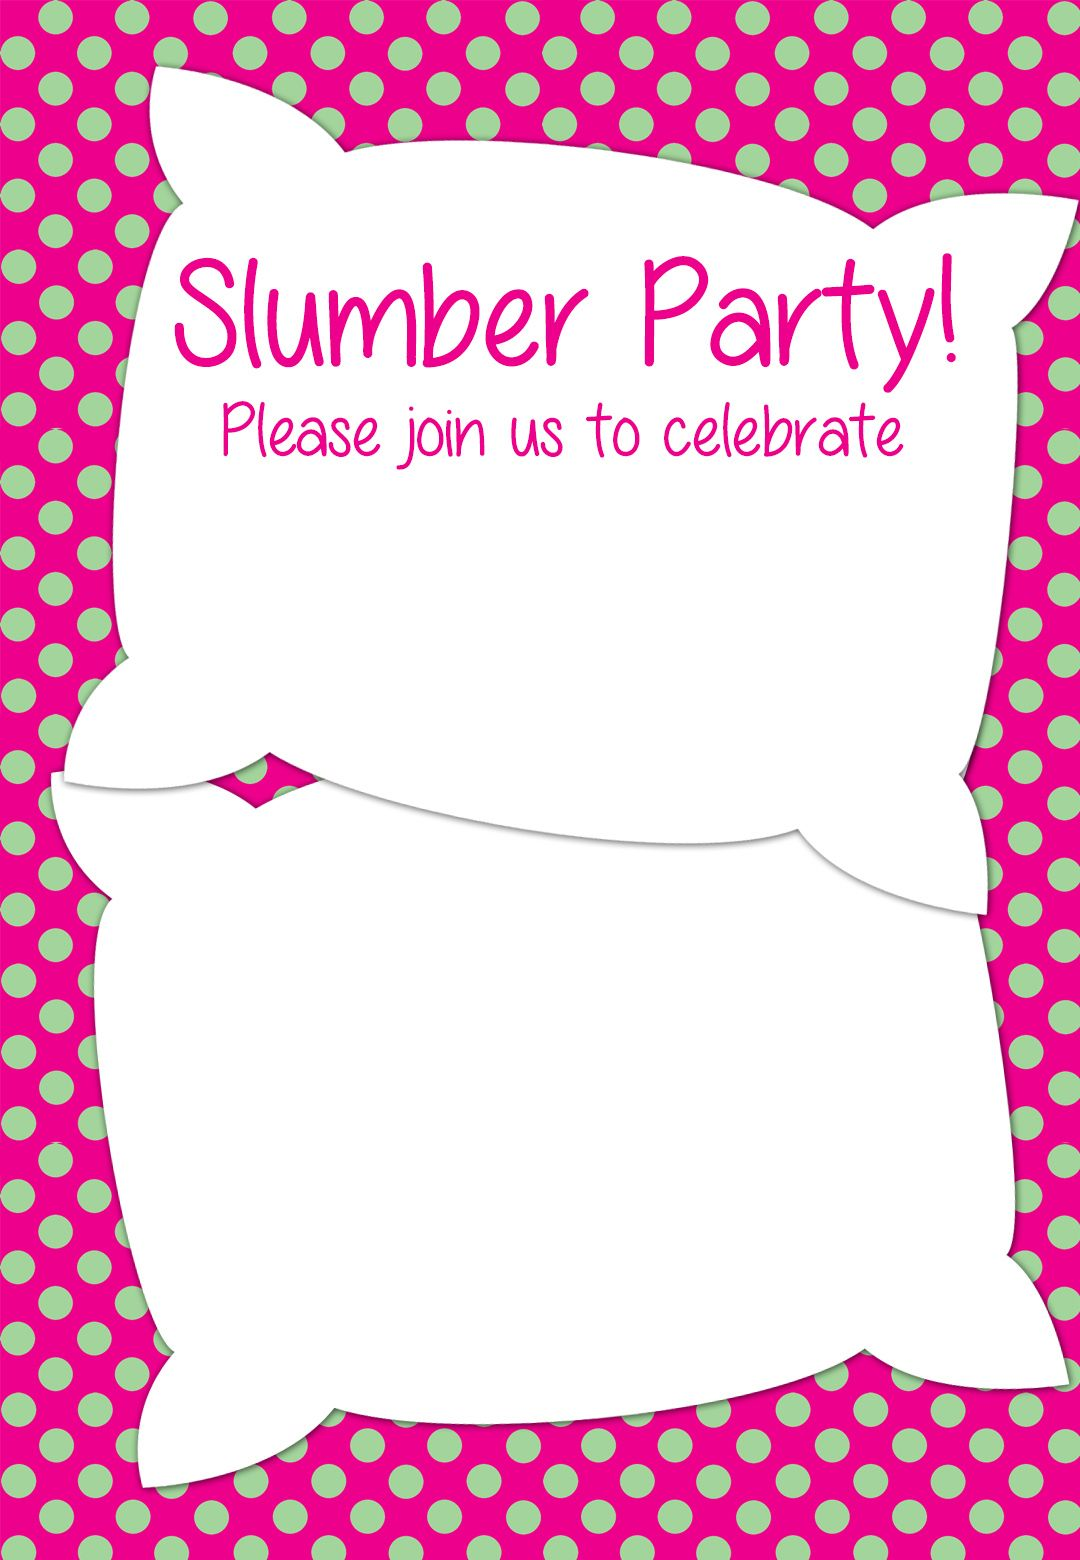 Free Printable Slumber Party Invitation in 2019 | Slumber ...